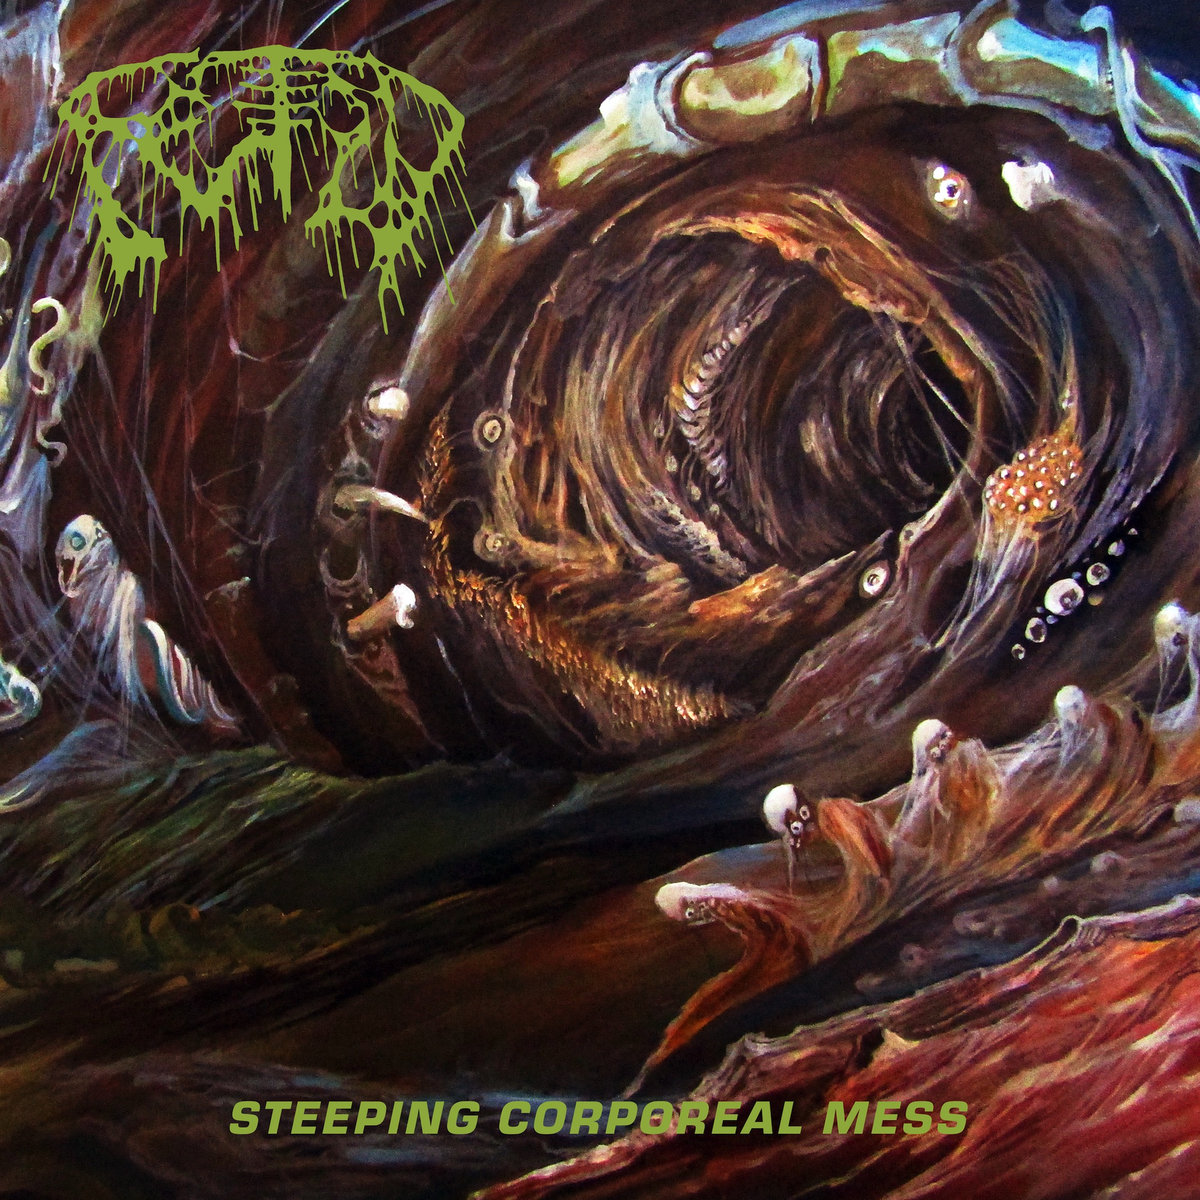 "Steeping Corporeal Mess by Fetid - Ah, when the gods of Old School Death Metal possess youthful, energetic, and undeniably killer musicians. Trudging forth as saints of their almighty craft and hoping the rest of us mere mortal beings don't loose sight of what's truly important in this life… Old School Death Metal. Sorry, Jesus. The sheer amount of bands, new and ""old"", flying the skin-shredding OSDM flag proudly in music, t-shirts, tattoos, or WHATEVER;  and doing so in a proper way to pay respect and proudly let their influences shine as to not merely regurgitate or imitate, just to rock, is proof that it will never die. I think they thought it would.. then comes a record like Fetid's Steeping Corporeal Mess.. and it sounds exactly like you think it does. Heavy, thick, lurking, boiling, putrid, and profane. It is compromised of gross subject matter, grosser production quality, and the grossest of the gross riffs. Fetid seem to draw upon many sources of enlightening death for inspiration ranging from taking the point of view of a corpse already buried alive, intestinal possession & expulsion, physical as well as mental & supernatural torture, and just general studies of rot and decay. Embodying (literally) all of the above as well as the subtle sounds and textures that go along with it, Fetid has produced an ancient death sludge - primordial ooze of a record that is as timeless in nature as it is in death.. It is perfectly paced, titled, orchestrated, and composed (and decomposed), as that maestros of metal would have it no other way. As the visceral debris remains and pieces of guttural and pulsating precessional harmony pollute the airwaves, I still could not tell you what's nastier… an actual reeking pile of fly-infested organ meat suspended in gastro-intestinal fluid bubbling and sizzling under a sweltering desert sun; or Fetid's bass tone. I guess we'll have to further dissect this 5 song slaughterhouse of a record to try to figure that one out. Who's with me? Bring your own barf bag. Let's do this shit.Seemingly to dropkick the listener square in the chest (this is Sparta style) into an infinite sweltering & oozing void such as brilliantly depicted on the sickly obscure album artwork, giving a new meaning to 'kicking it old school' entirely.. which, thank the gore lords, they do. Quite excellently, in fact. Yes, the grimy & guttural OSDM is applied with a strikingly thick brush, but highlights of extravagant color protrude from this landscape of rot as well. Further enhancing Fetid's flavor of extreme metal, they effortlessly take their songs form a bare bones, knuckle-dragging, death metal hitters to soaring them into an almost uncharted realm of foul stench atmosphere and churning rhythmic zombie-inducing hypnosis. They seem to achieve this honor by pushing songs to around the 6 minute mark, but holding enough back as to not push them into technical/deep space/progressive realms. Although Fetid keep the trackless light and tight at a mere 5 tunes of plunging death, making it either an alt rock album snob's worst actual nightmare OR the best case scenario for a splatter freak with AD/HD and too many weights to lift. That being said the shorter runtime makes it perfect for a full on 45 minute workout frenzy, although that's not for everyone; it is a fuck of a lot cheaper than therapy. And Fetid won't kick you out on the first day for being ""noncooperative."" I couldn't have been the only one. SO back to the album.. 5 songs is not much for quantity but the quality is that of unnerving consistency. The songs have been sliced open and packed to the gills with all the grave-opening blast beats, guttural vocals so guttural it sounds like actual guts spewing twisted lyricism at its finest, a hulking and menacing bass section that'll leave your cranium rattling for days, and not to mention riffs. Did I already mention the riffs? Well, shit, let's talk about the riffs.The star of Fetid's death show is undoubtedly, IMHO, the 6 string. The guitar workings of Mr. Clyle Lindstrom are as exciting as they are horrifying (but what's the difference really?) as one moment we could be locked into an old killer groove, then at the drop of a dime (or eyeball) we are launched into a riff fueled tempo change into frenzied Dismember territory. Not to mention  some spiced up pinch / pick-through- the-eye- harmonics of demons, all before coming back to the almighty death metal RIFF Fetid so effortless spit out and cycle through. Facemelting is far from absent, however, facemelting via intense solos, is.. and I like the record more for it. Instead of a reworked classic death metal solo, they employ of Morbid Angel commandments as to make the guitar shriek, wail, howl, and vomit all over the place.  Although Fetid's tunes push into longer lengths and creeping depths, there is no reach for technicality or shredding, they keep it down to earth. So far below the earth into the primordial depths of such that there is no such room for technicality, just writhing in the gross and gruesome Steeping Corporeal Mess of an atmosphere they created by their wicked hands. As if you have the extreme metal vocabulary down, and not to judge a book by its cover, but you can sort of tell from the obscure yet not obscure enough artwork and logo to be classified as technical/prog death metal while keeping the old school heart still pulsating strongly.. I may be full of shit and that may be irrelevant but I think there's something to it… and their music holds up to that theory. All in all, I love how they just keeping reinforcing the thick absurdity and heavy catchiness of their riffs. And their stench of rotting death. However, the bass does get more than enough opportunities to shine throw the dankness and blinding bouts of blood, lending a generously rotting hand in assisting the riff mastery to do its duties of death. The chugging and slapping, thick and bleeding tone never gets lost amongst all of the lurking and bubbling elements it has every right to get lost in, and when it has a ""solo"" moment it seizes it like Jason Voorhees upon an innocent drunken teen's throat. Now that I think of it, there may be more bass solos on this record than guitar.. *infinite points scored* *cue screams of the innocent, lighting strikes, and showers of blood*Not to run amok (no pun intended) with comparisons to label-mates Tomb Mold, as they share similar vibes, although Fetid definitely do not push the experimental technicality near as much; they do employ a vocalist who also happens to be the drummer technique not commonly found amongst extreme metal circles for no better reason than what I'm assuming to be is that.. it's just too fucking hard. Again, not that the drums on Steeping Corporeal Mess are anything to rival Fleshgod Apocalypse or anything, but it is still very much heavy duty death metal drumming.. and, as they say, shit ain't easy. NOW try laying down breathless guttural vocals of horror on top of that. I applaud anyone's efforts in that realm. Not to mention the live of sound they achieve with merely 3 dudes in the band, one of which handling drums and vocals alone, is nothing short of impressive. Total bad motherfuckers. May the head banging never cease. Fetid's Steeping Corporeal Mess is the perfect record for old school fans looking for something just a little more progressive, different, expressive, and probably grosser than anything you've heard this year. For the rest of us, it's just another killer death metal record that very well could register among the best of the year. The fine humans at 20 Buck Spin have unleashed another monstrously sick production  yet again… KEEP KILLING IT.Rating: 4.5/5Gym Rating: 4/5Check em out:https://listen.20buckspin.com/album/steeping-corporeal-messhttps://www.facebook.com/fetid.death/"